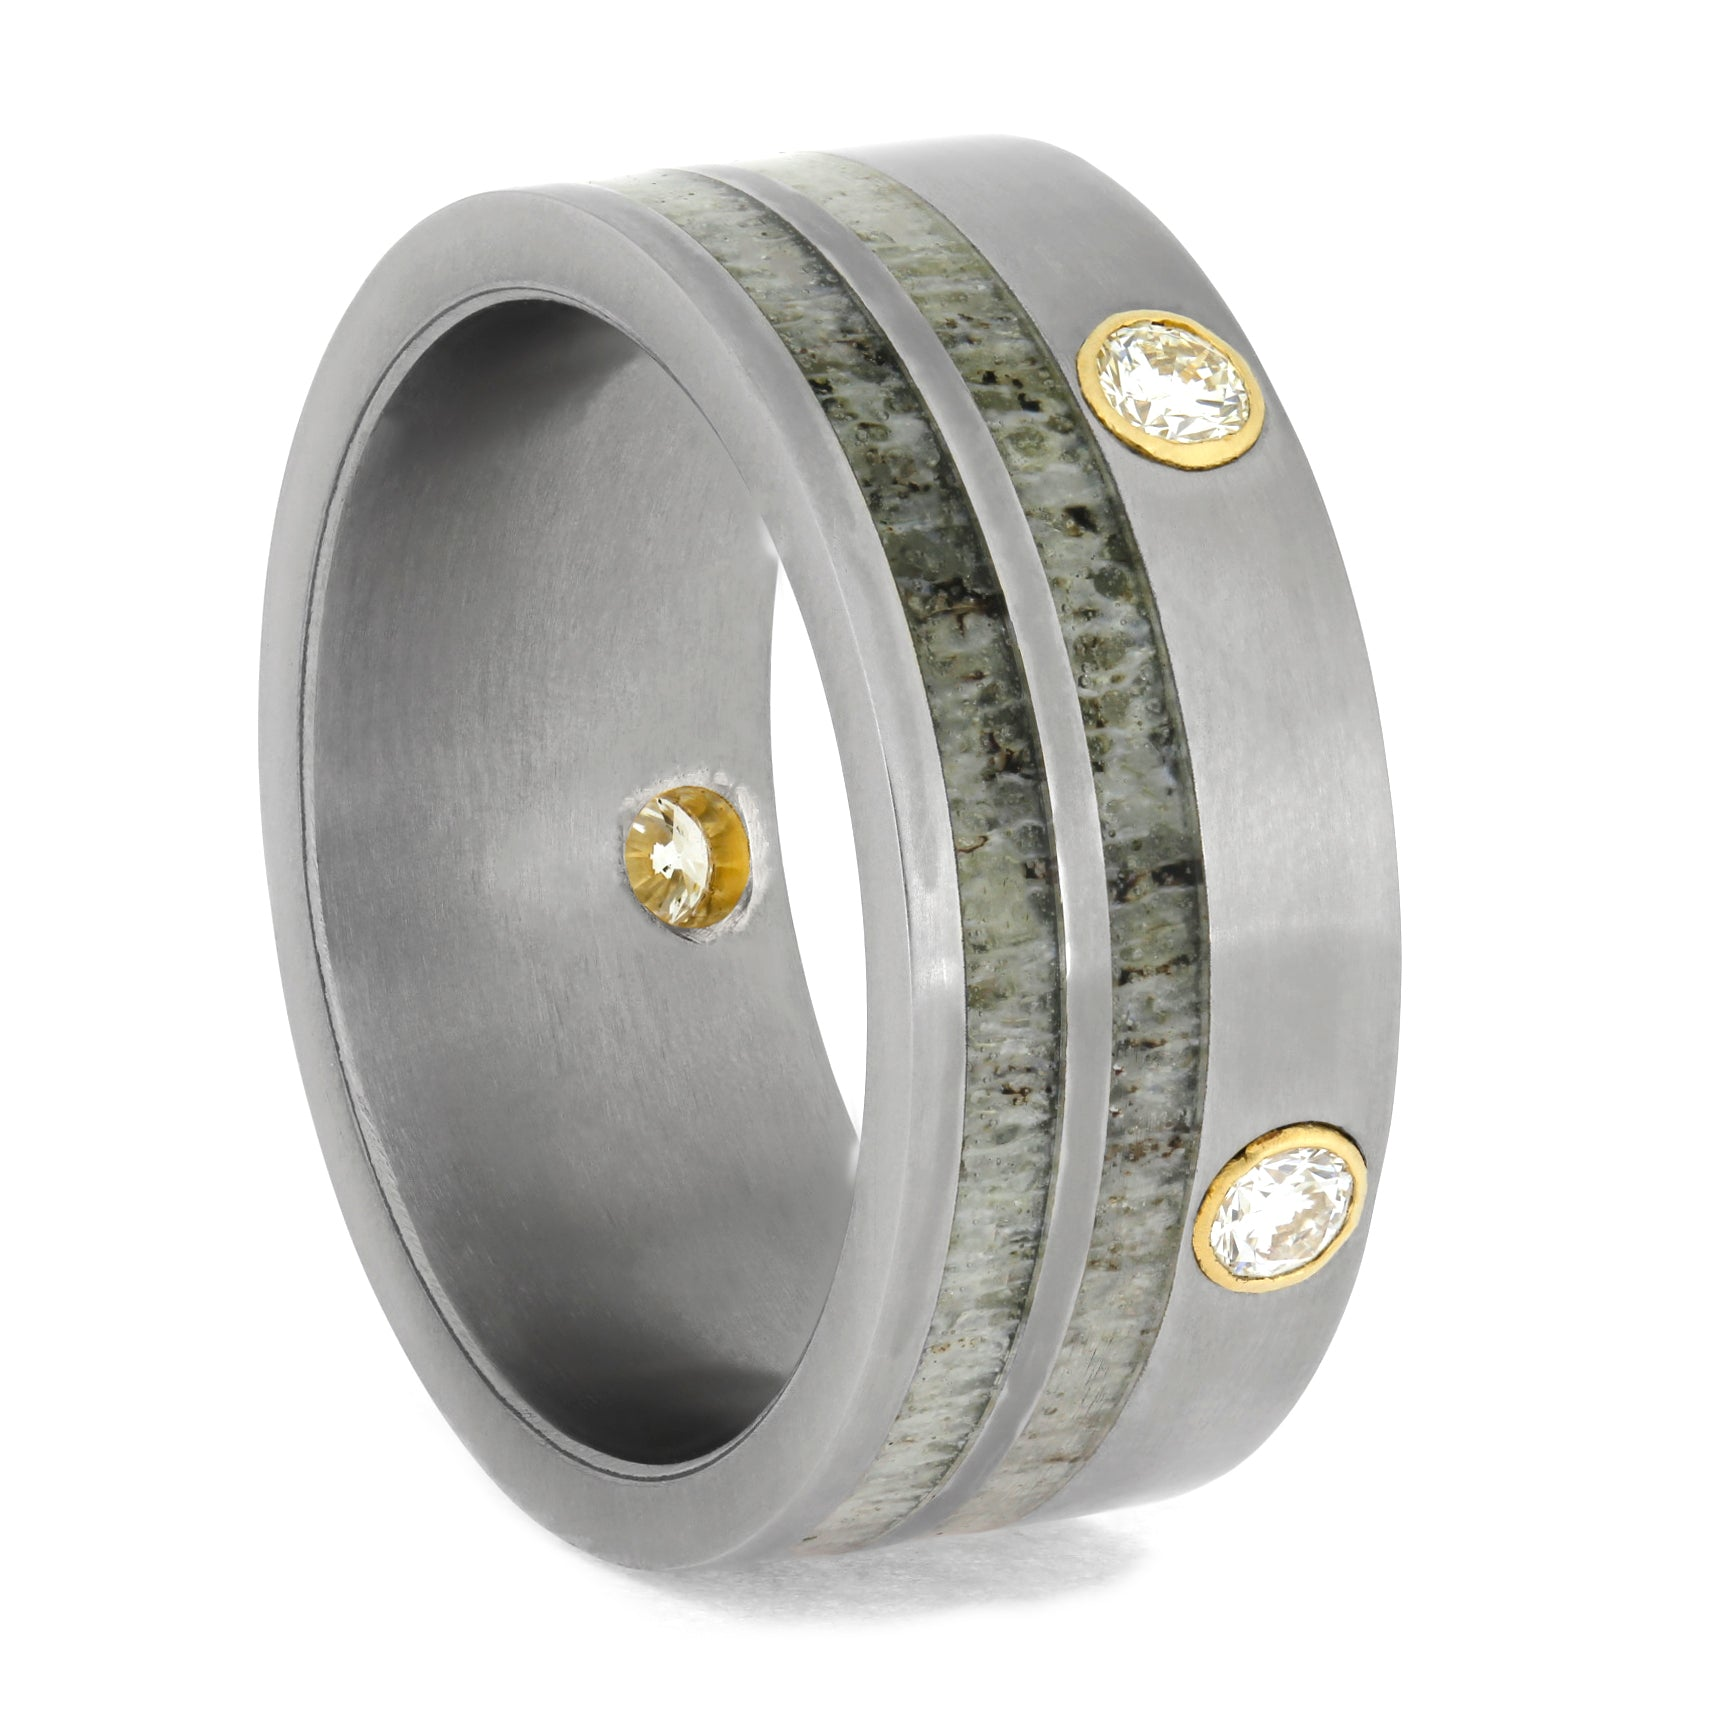 Diamond Wedding Band with Deer Antler in Titanium, Size 11-RS10472 - Jewelry by Johan